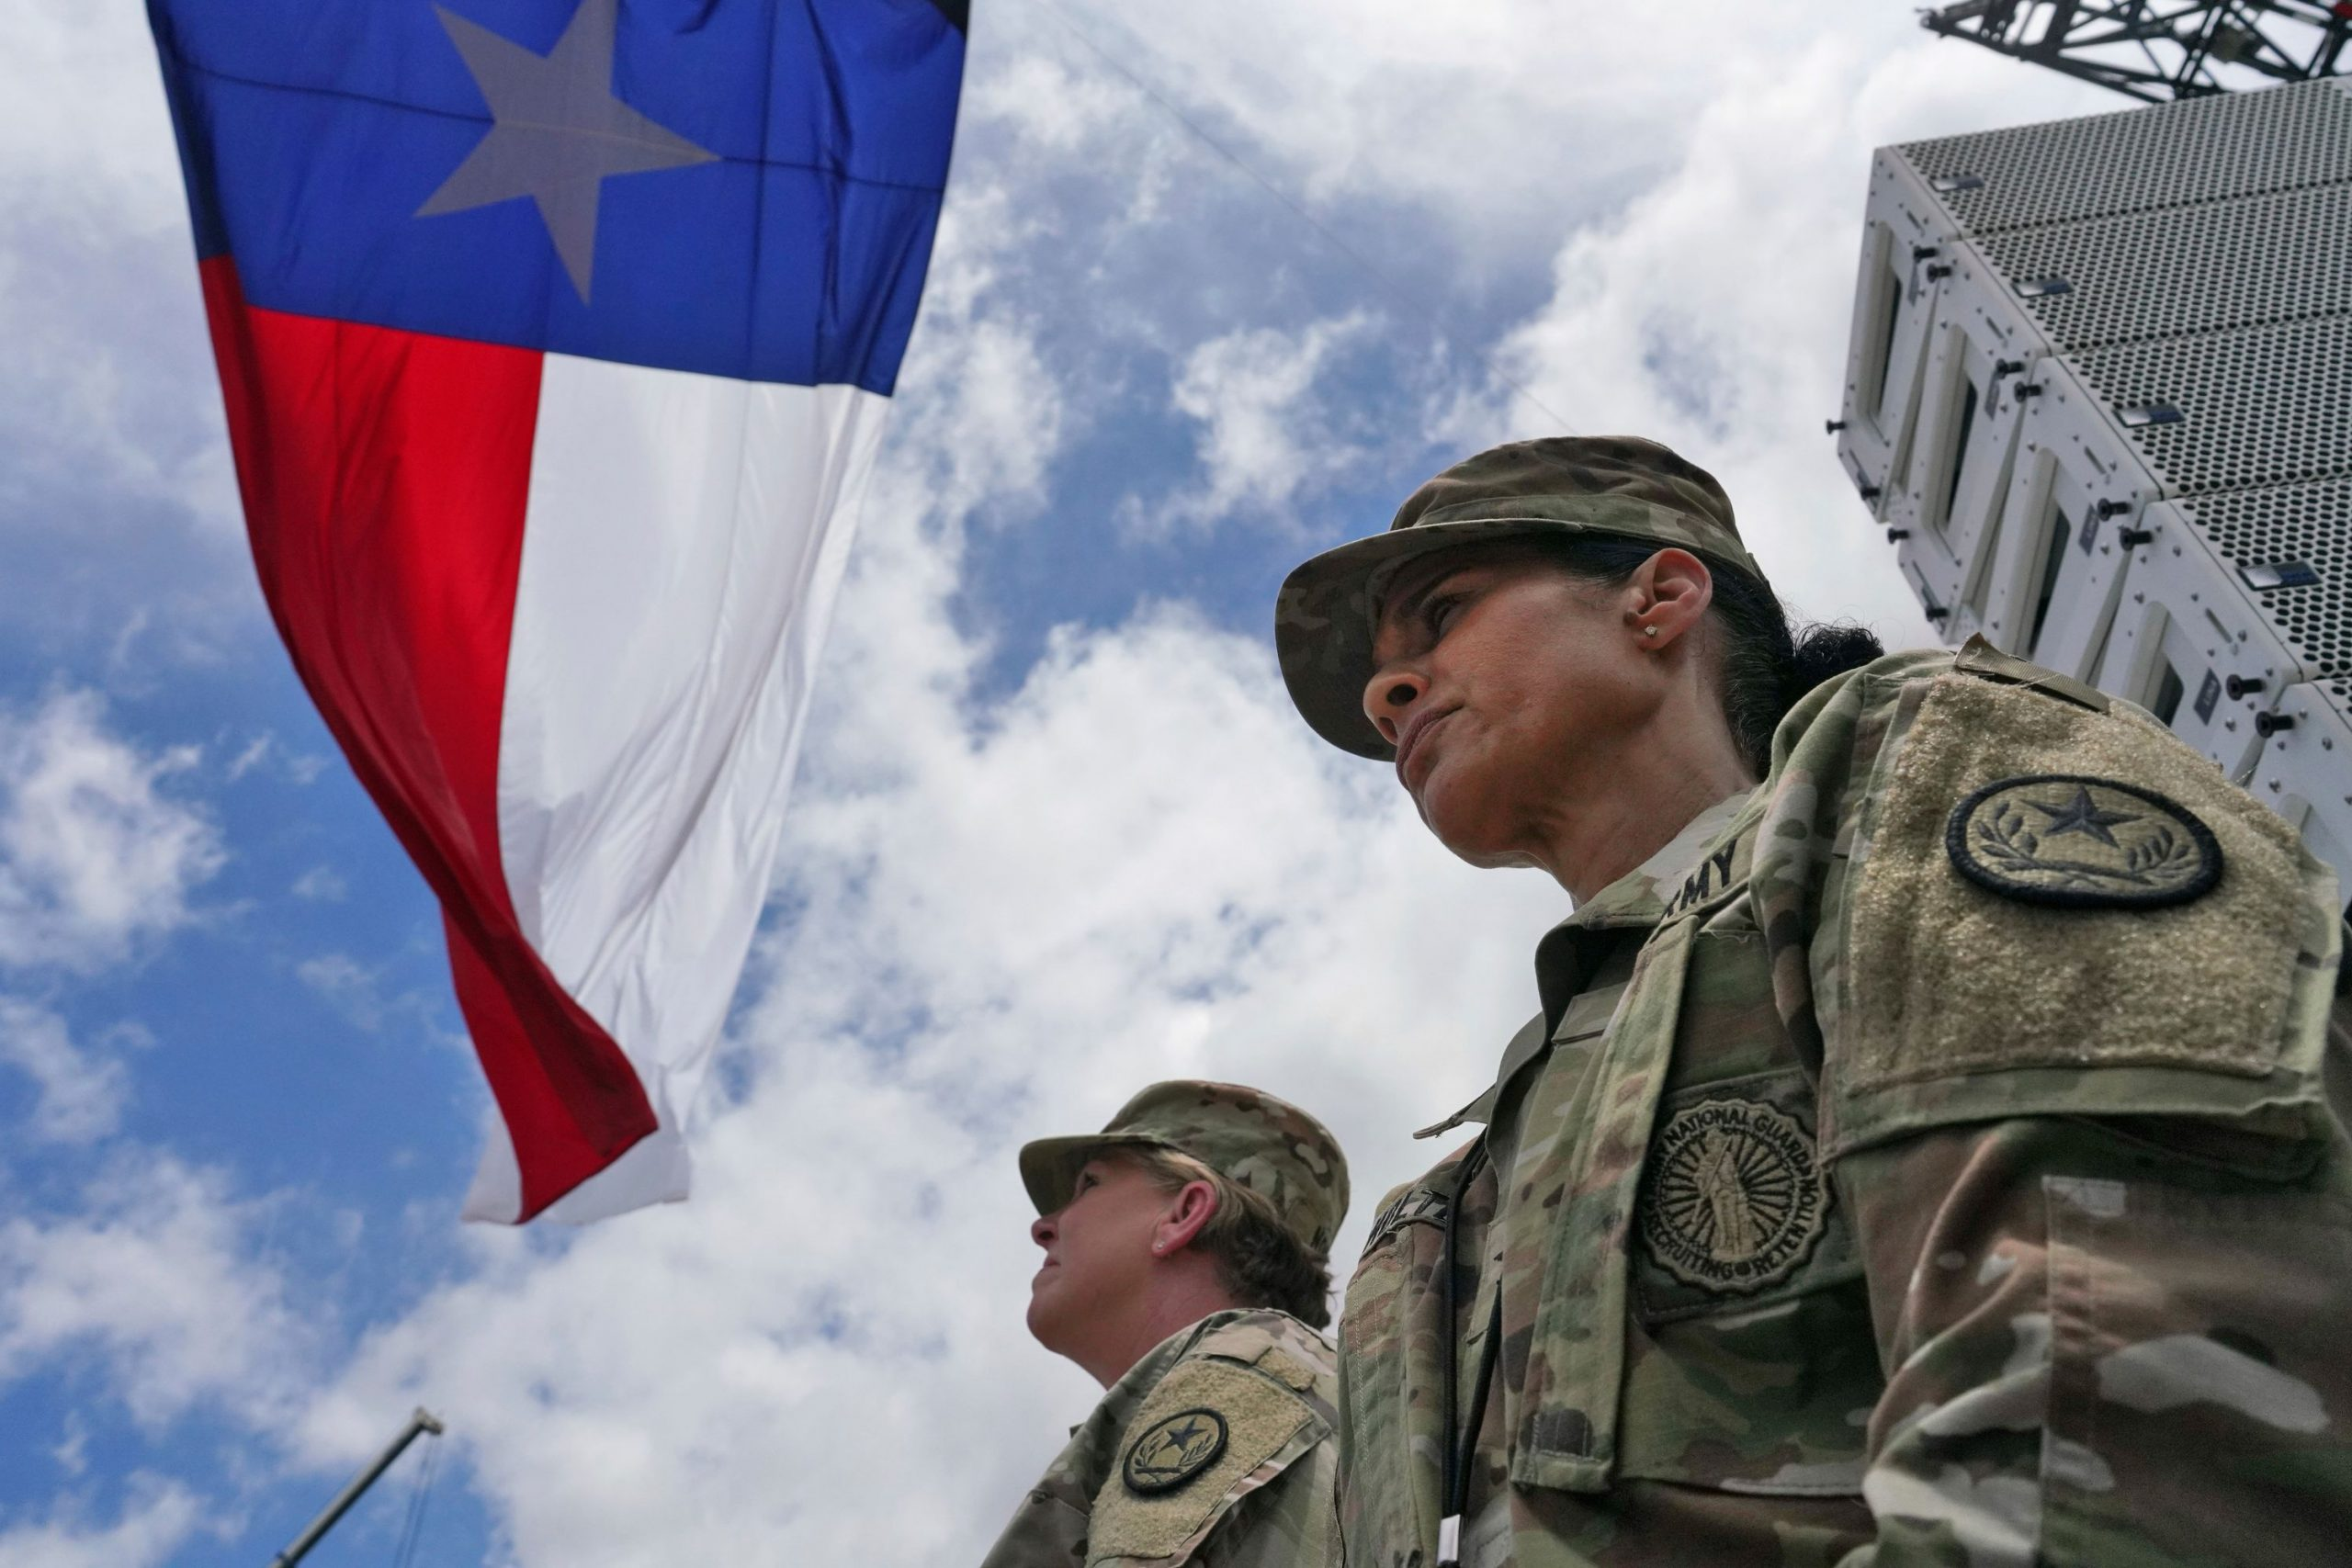 Why Are Republican Governors Sending National Guard to the Border?